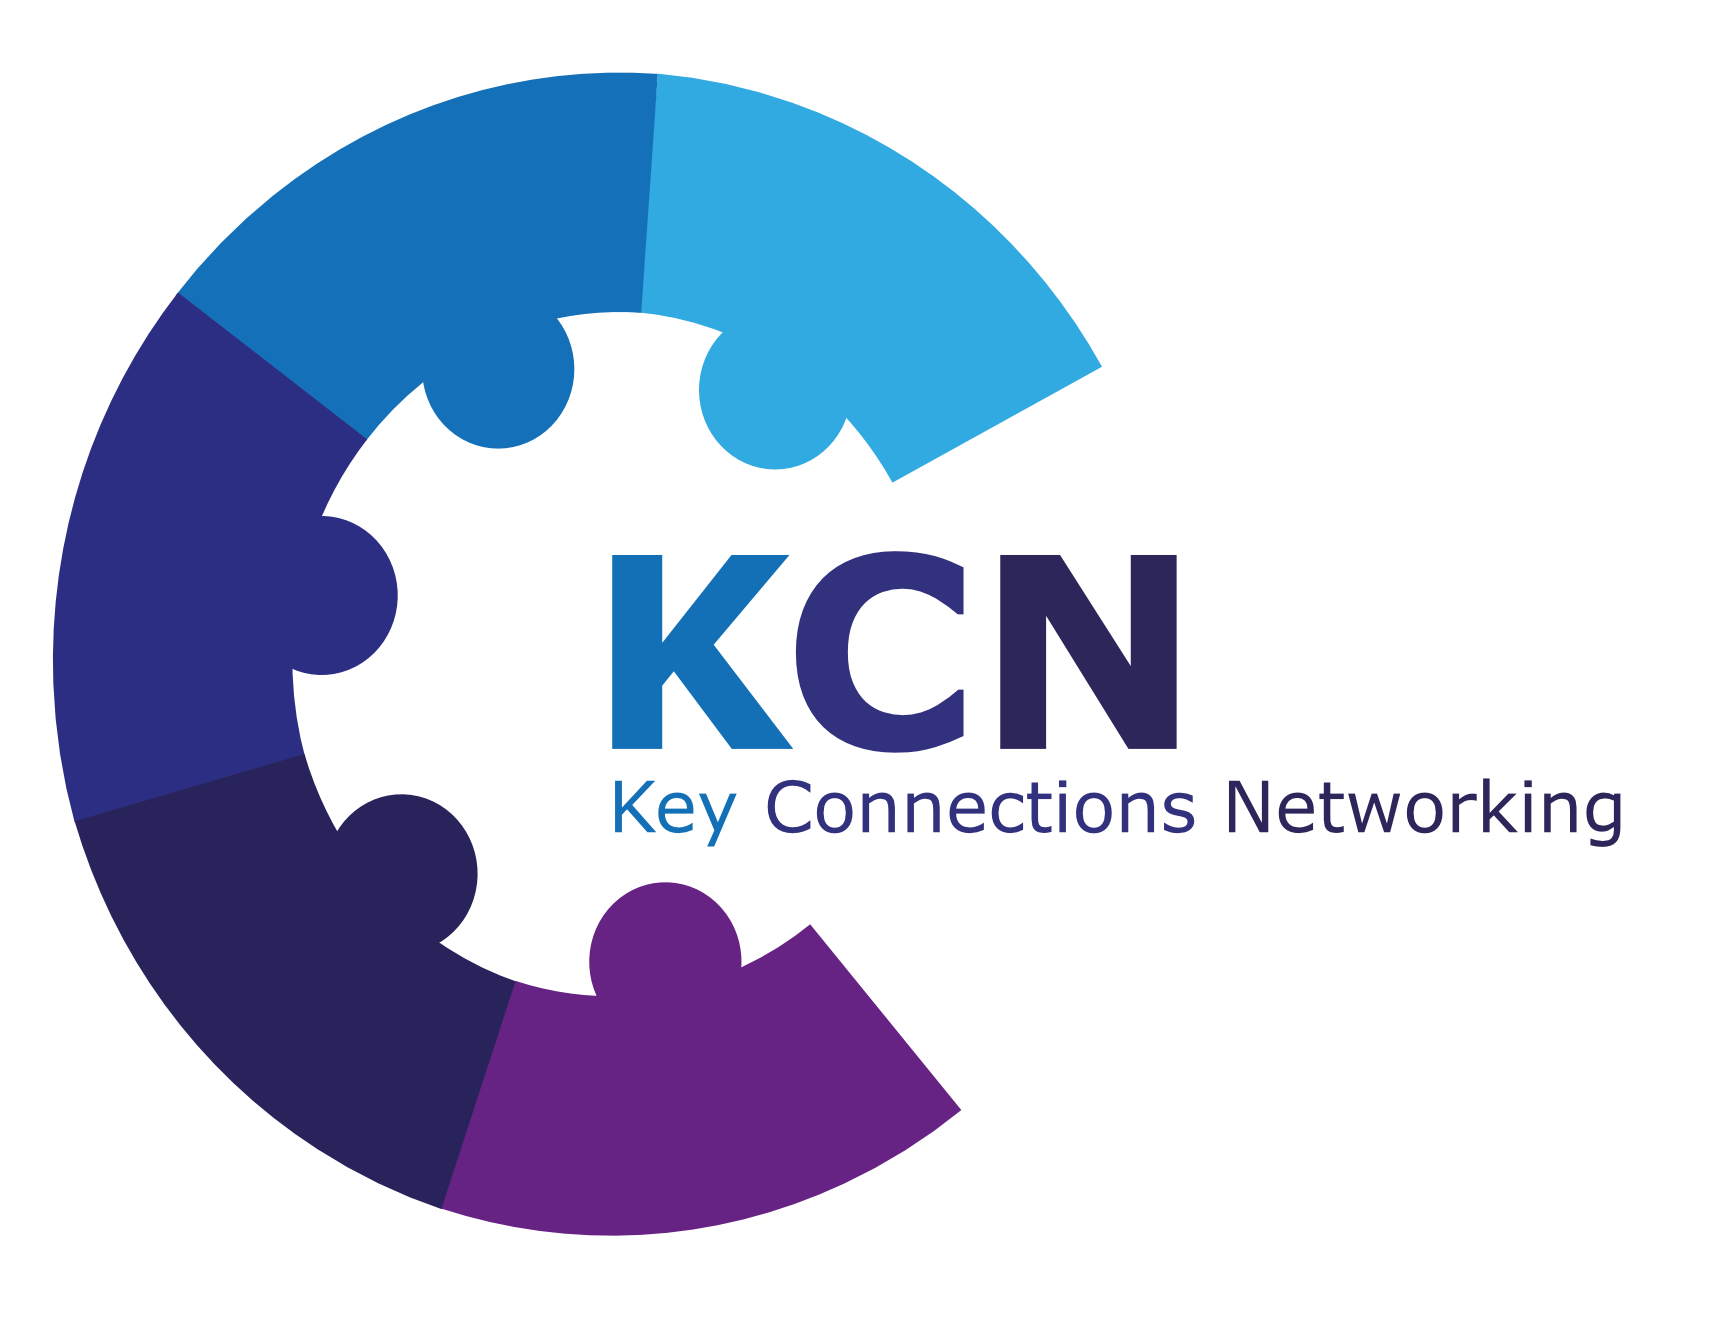 Key Connections Networking Logo Design